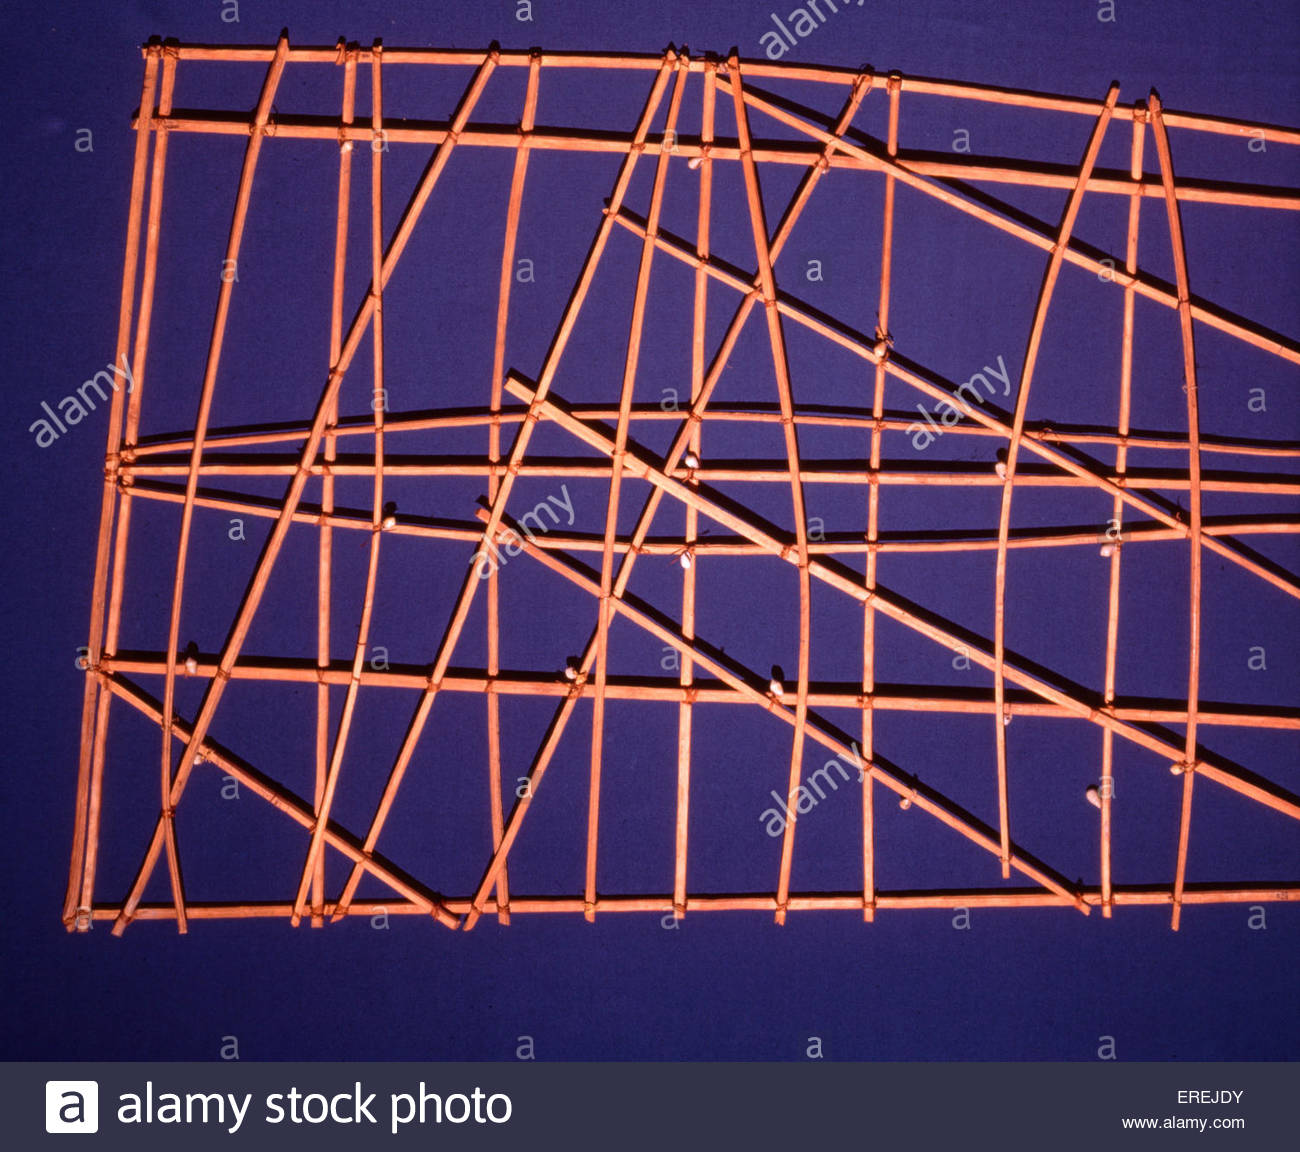 Polynesian bamboo navigation charts - a system of mapping ocean swells, sticks bound together with coconut sennit - Stock Image